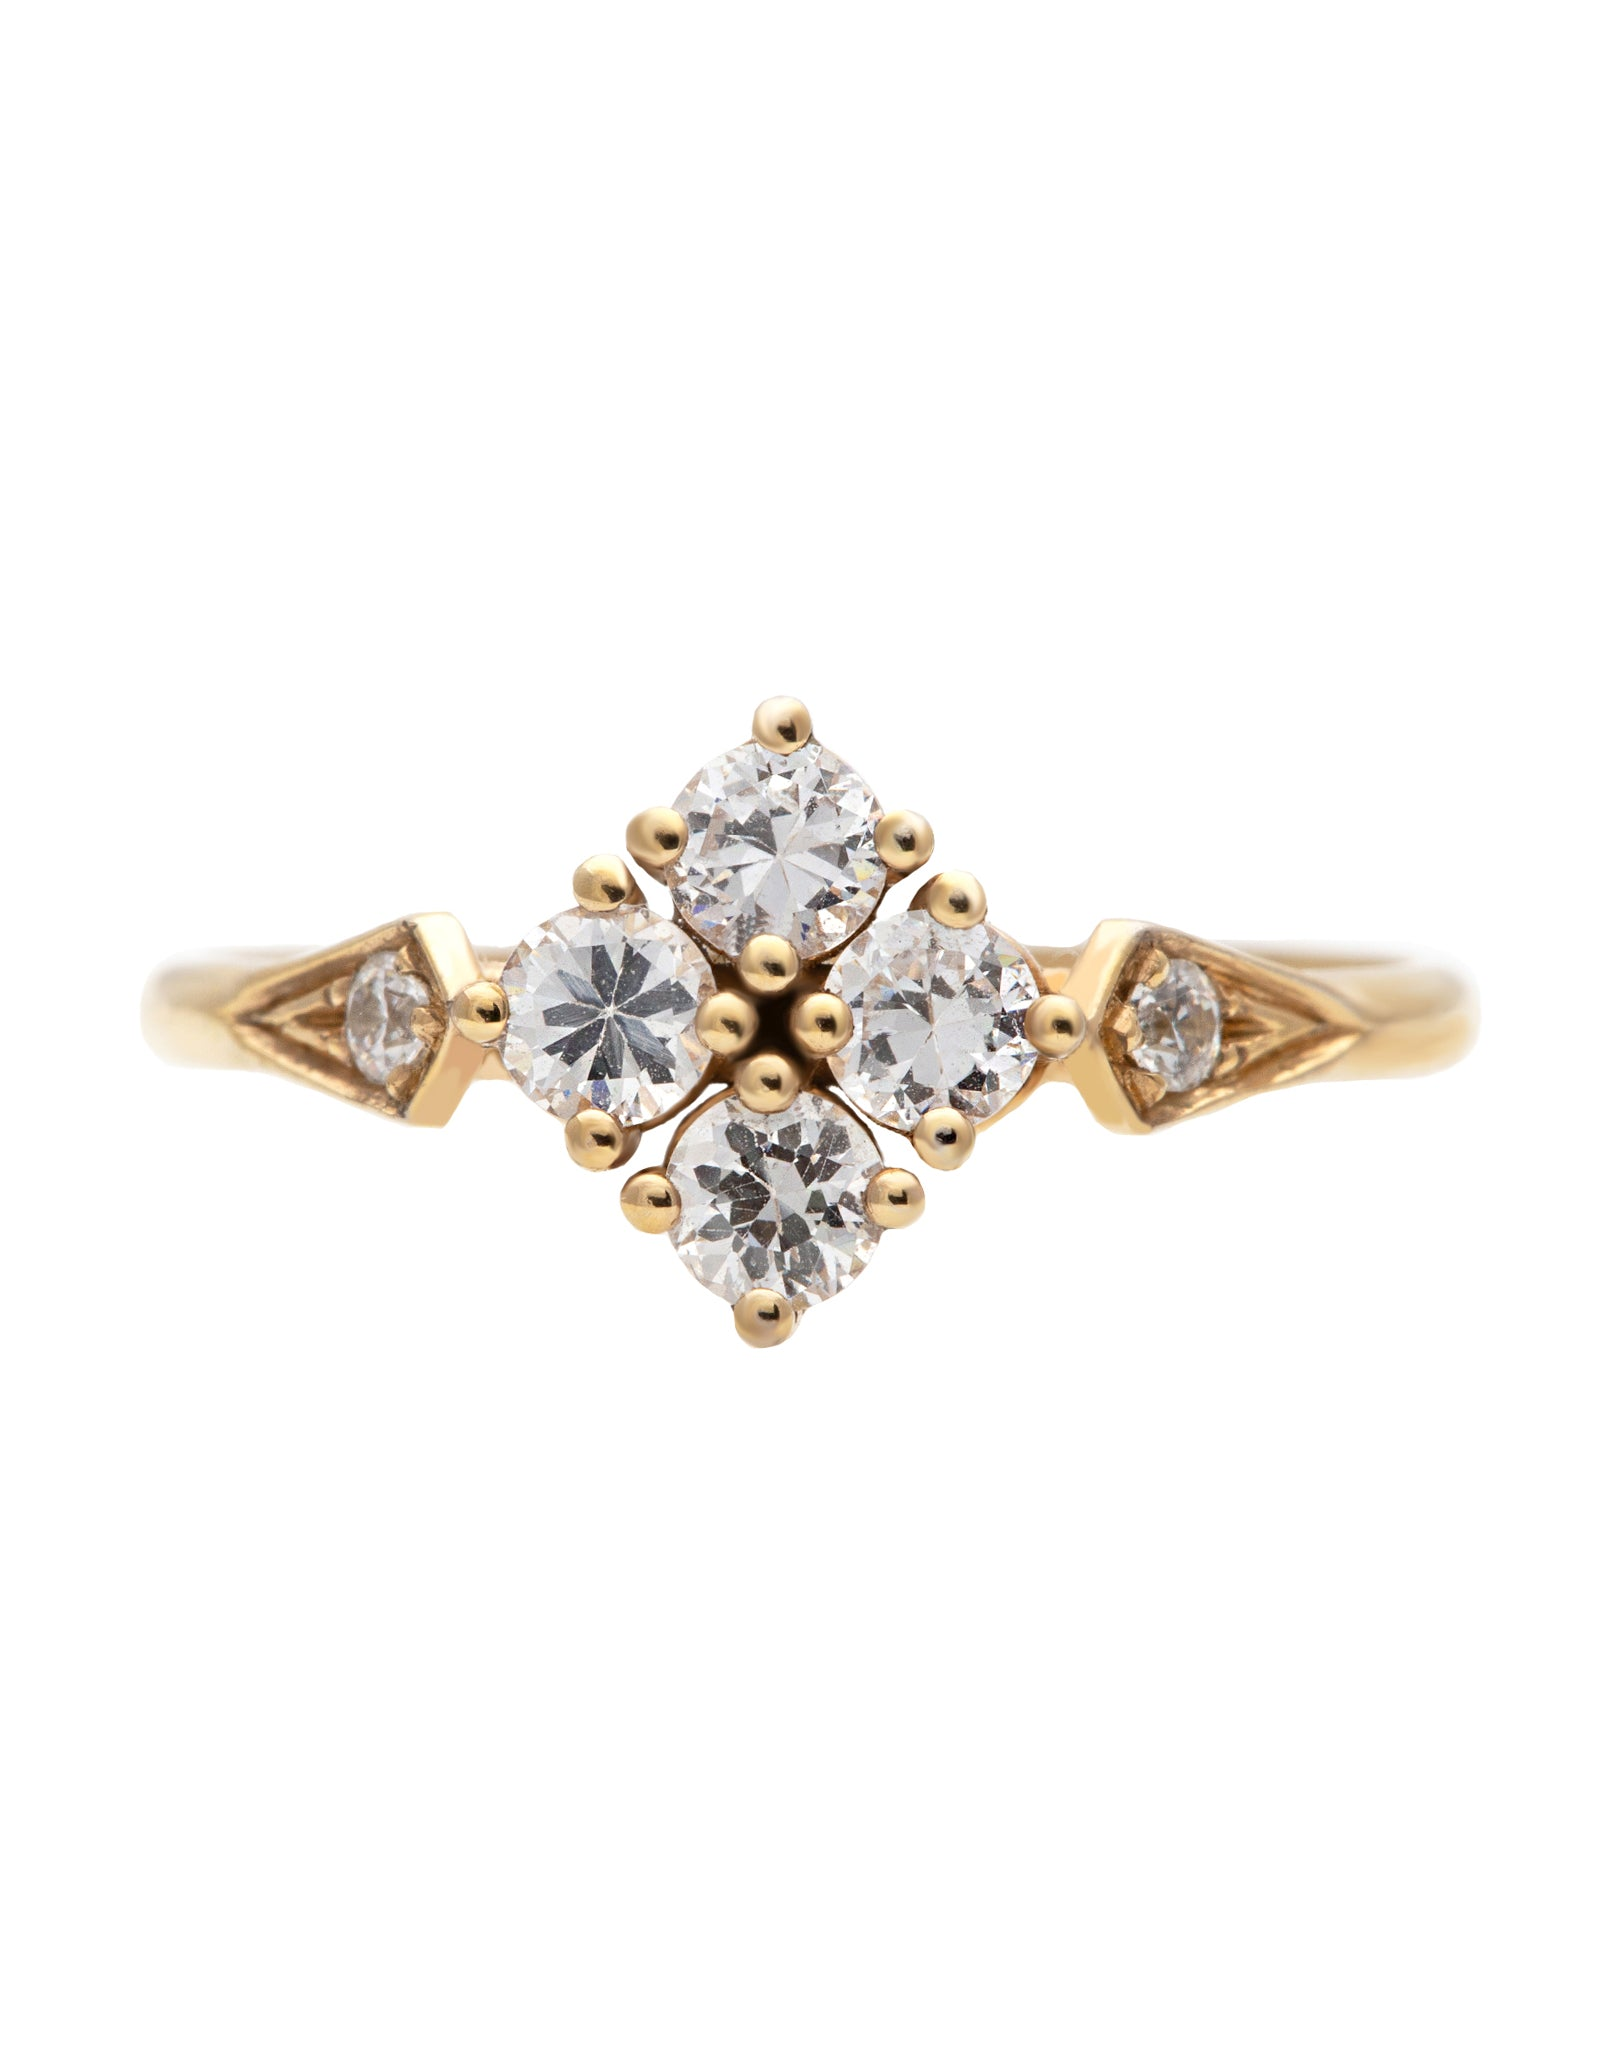 Reut B Extra Kite Shaped Engagement Ring with Lab Created Diamonds